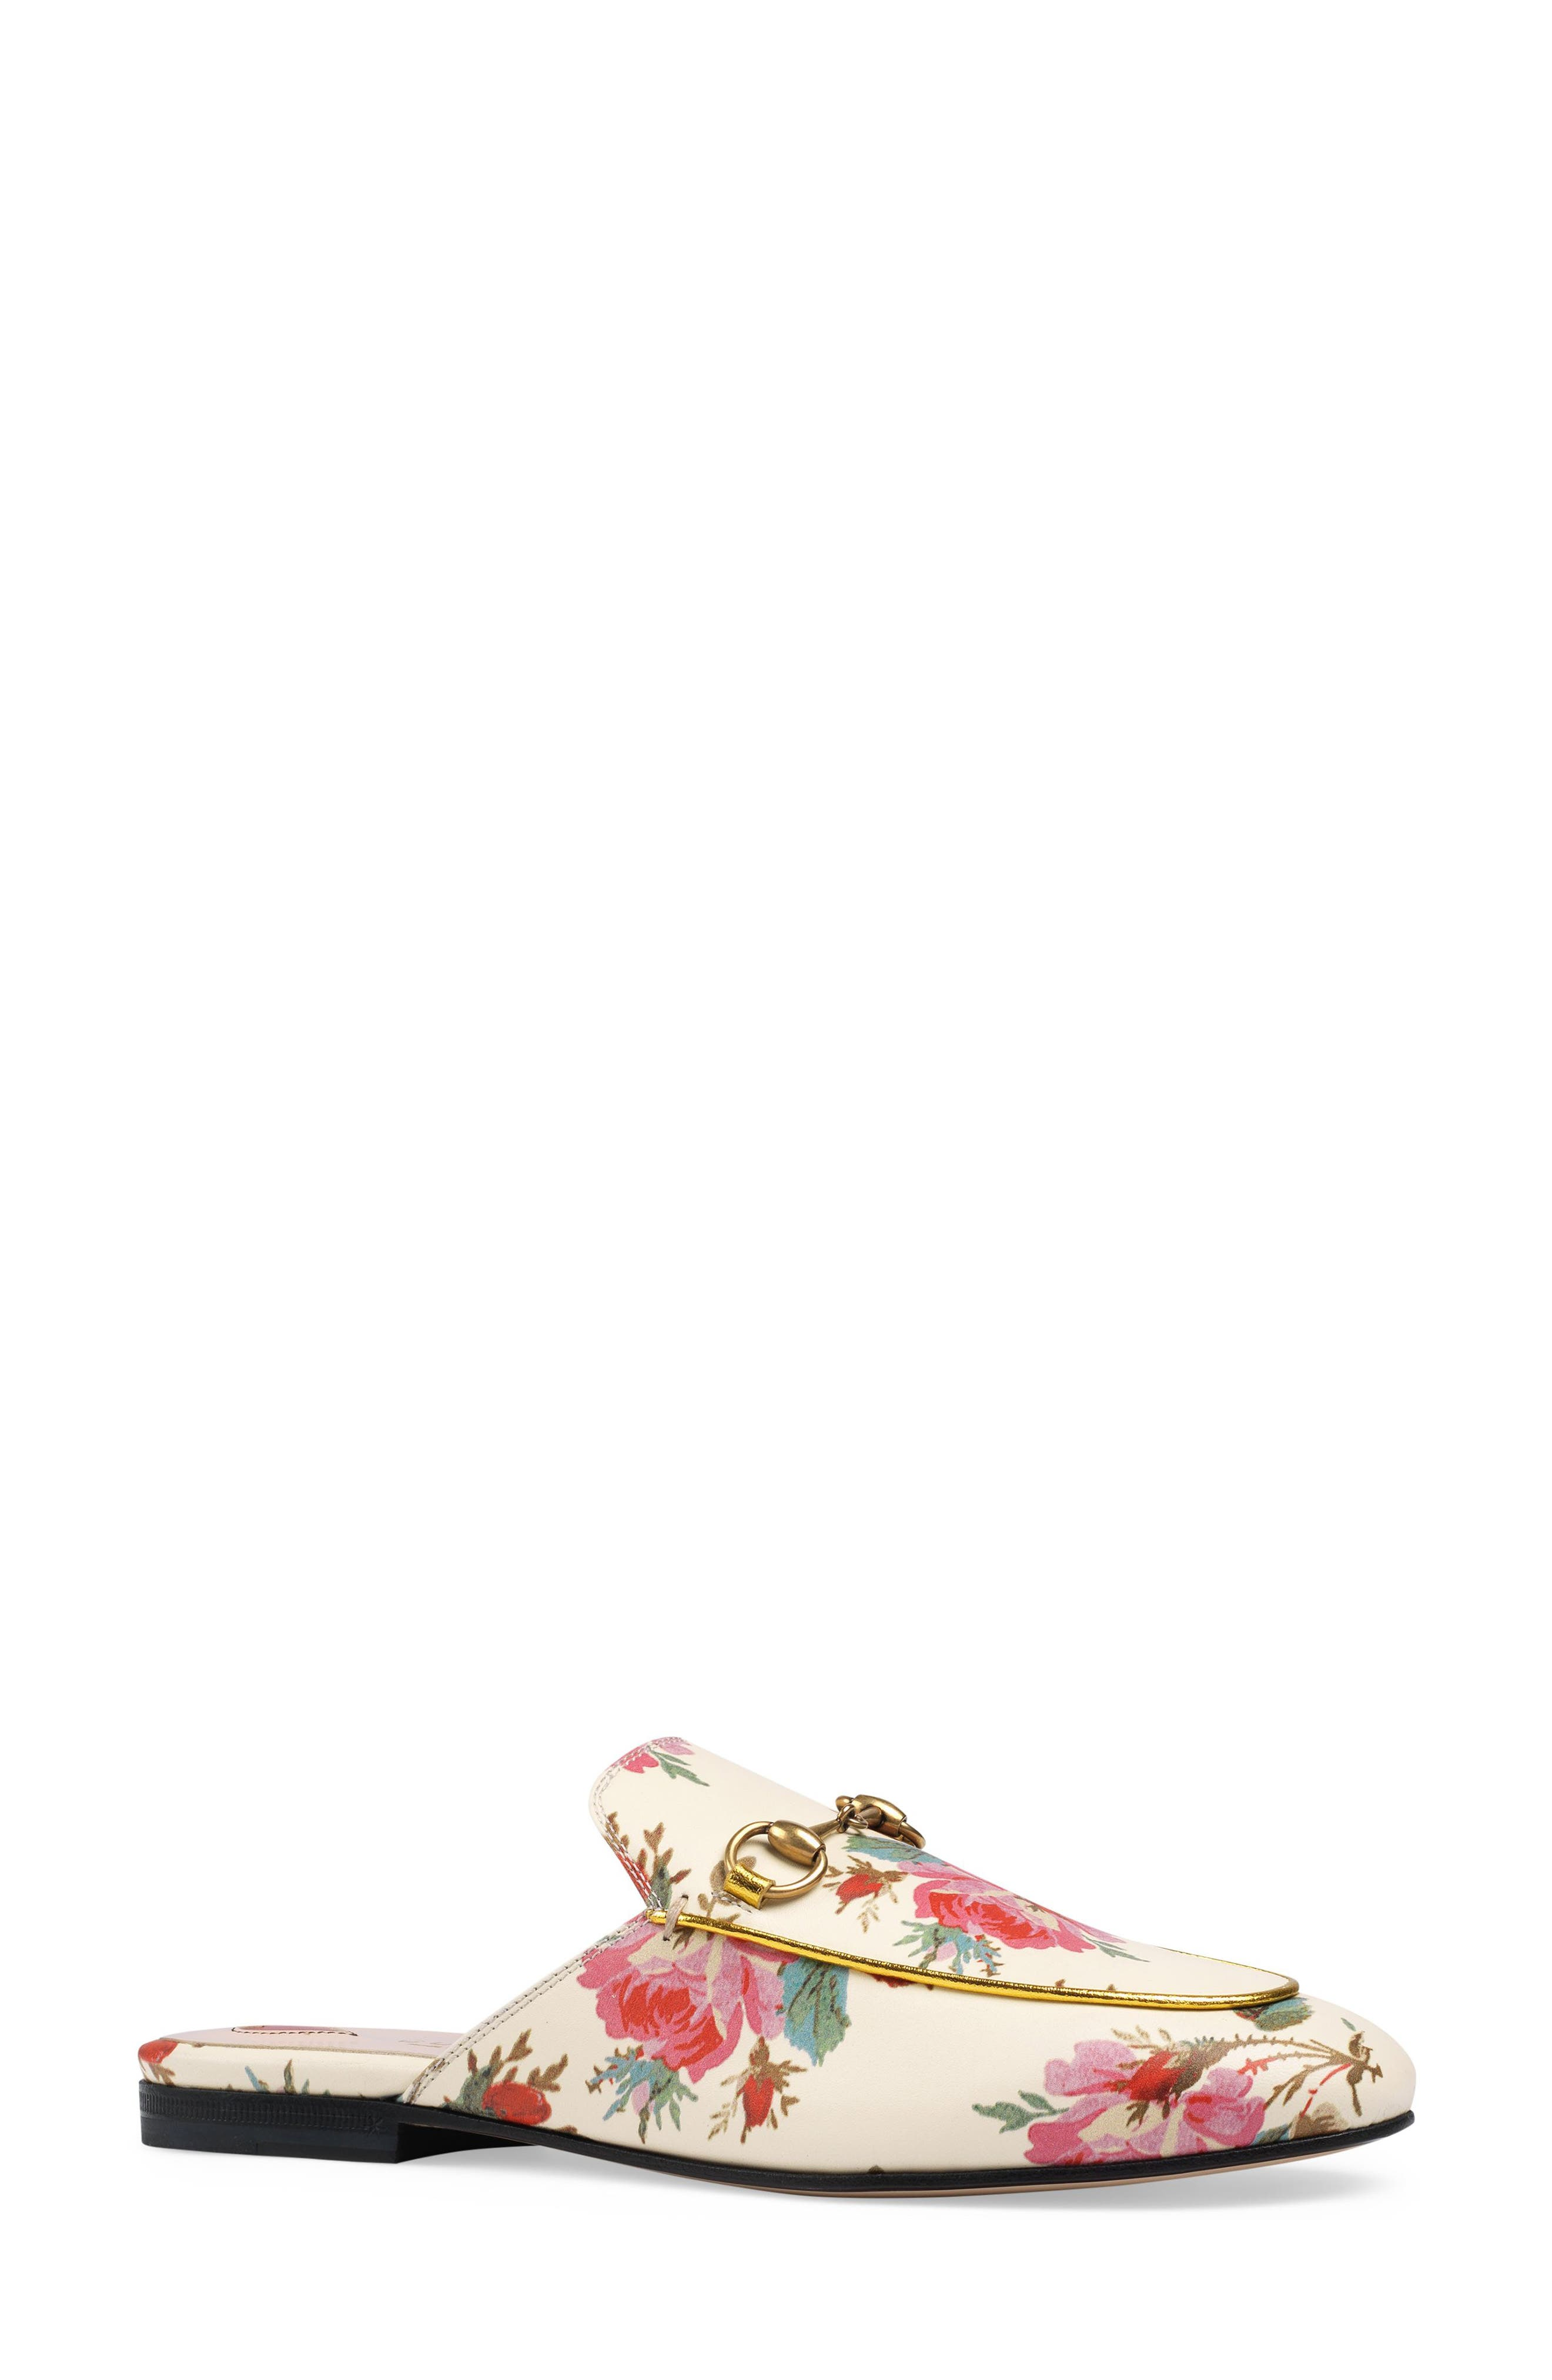 Main Image - Gucci Princetown Floral Loafer Mule (Women)